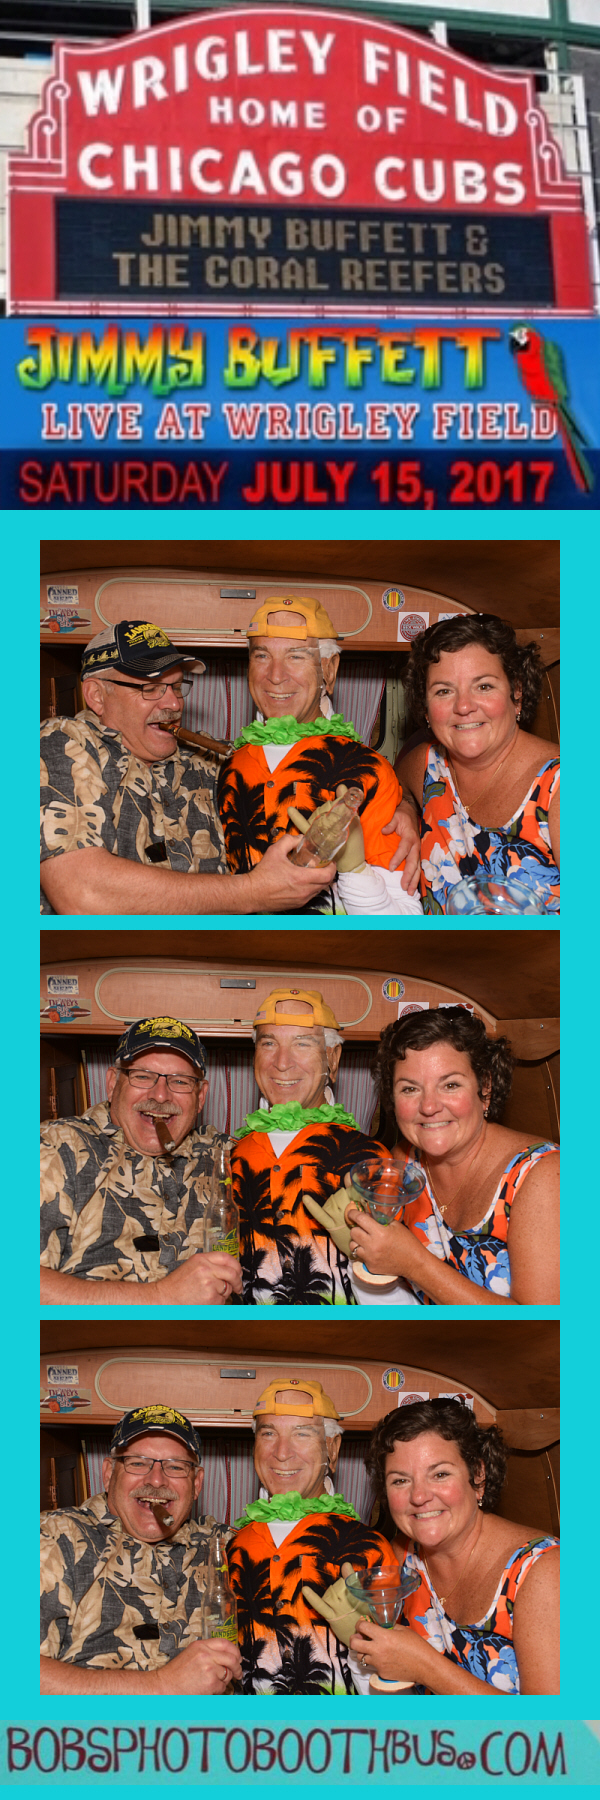 Jimmy Buffett final photo strip graphic_49.jpg